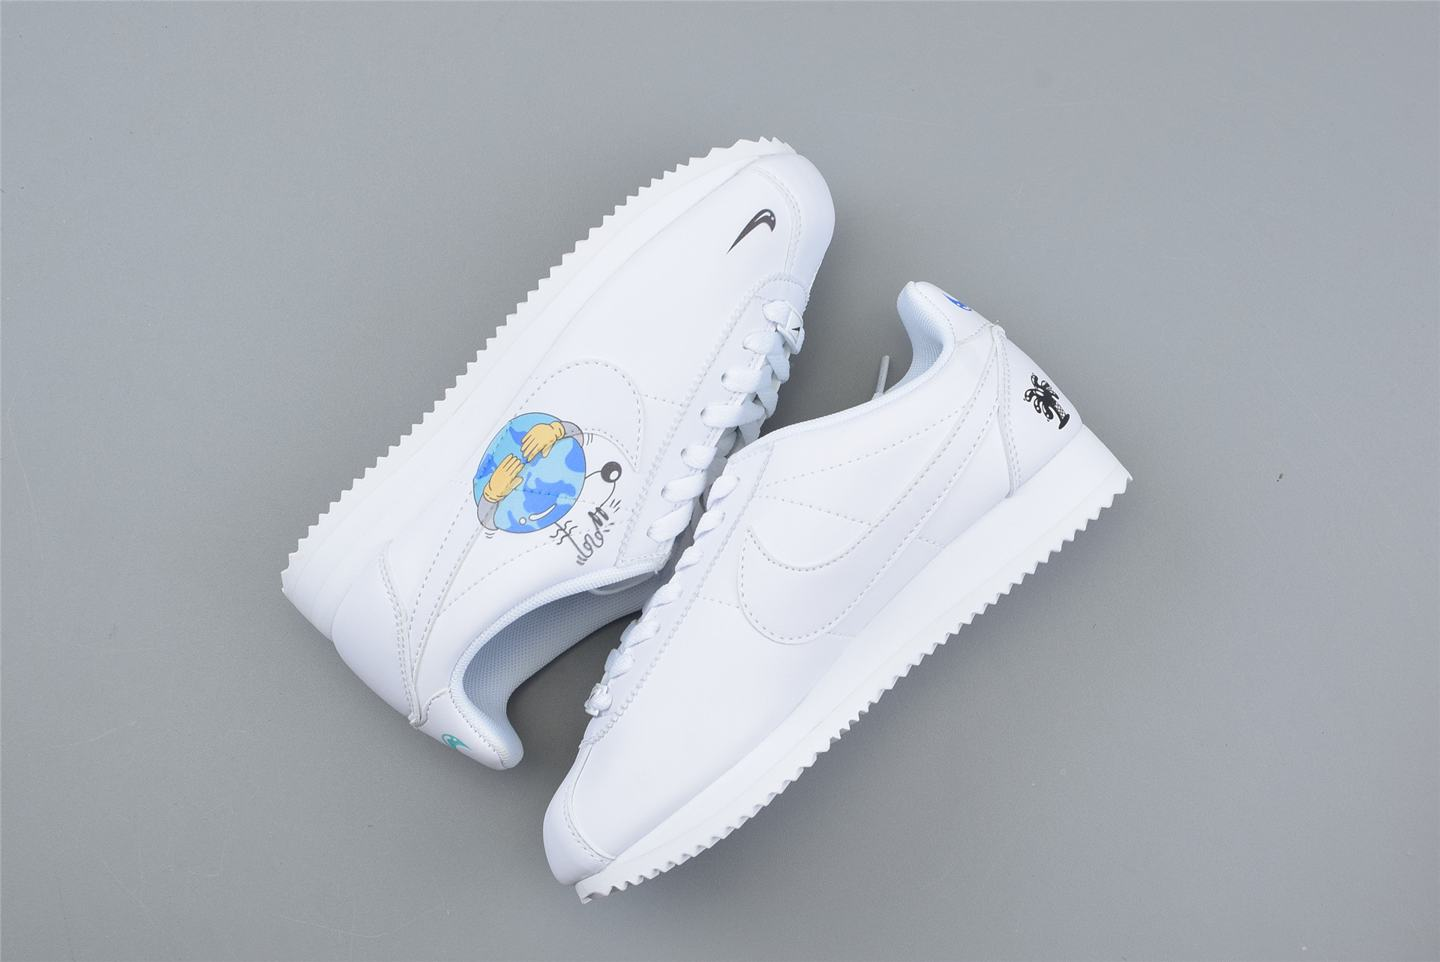 Nike Cortez Flyleather Steve Harrington Earth Day 2019 3